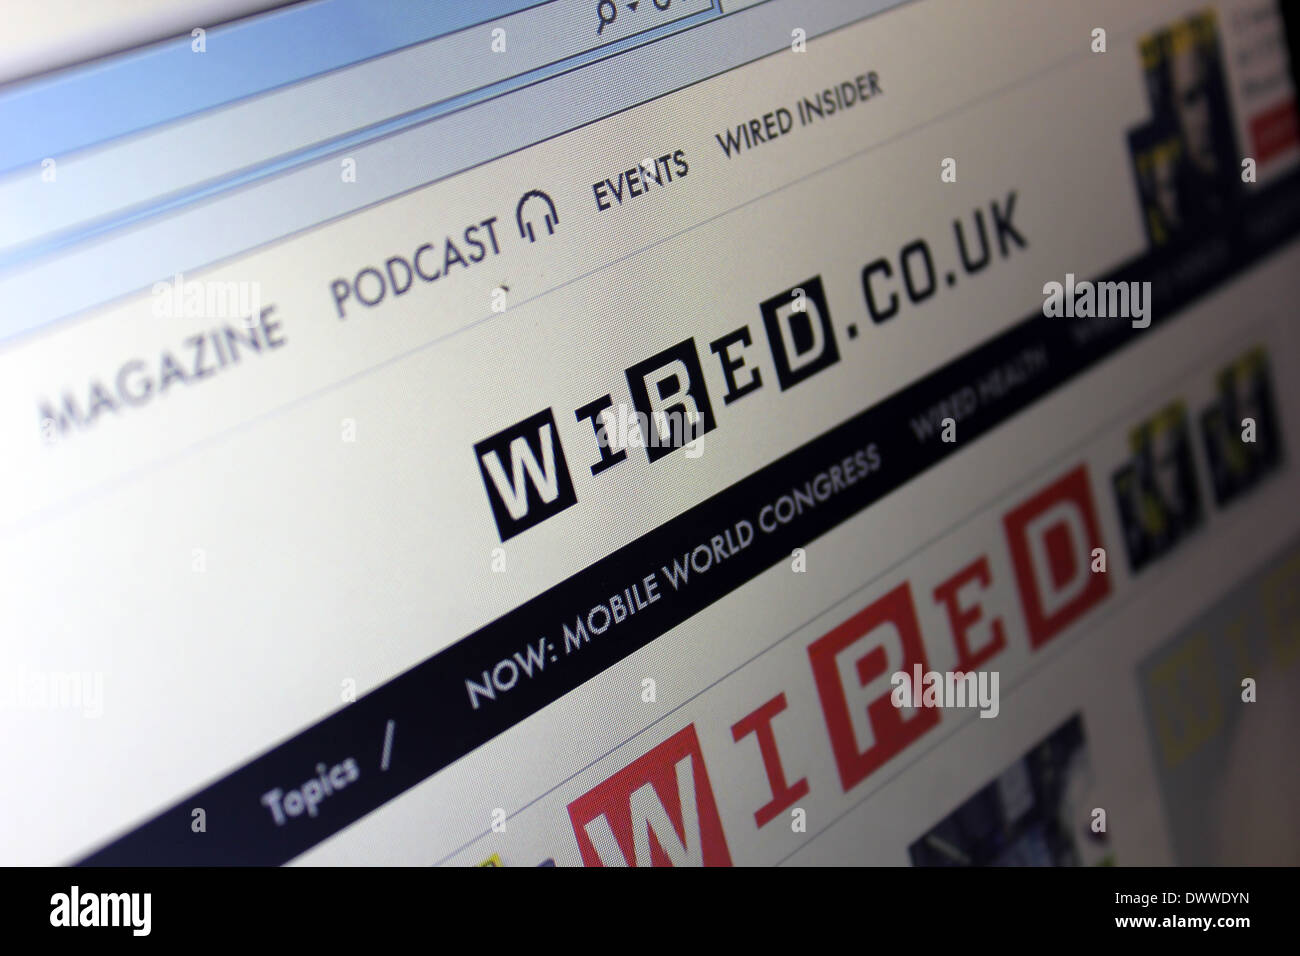 Wired Co Uk Www Wired Co Uk Stock Photos & Wired Co Uk Www Wired Co ...